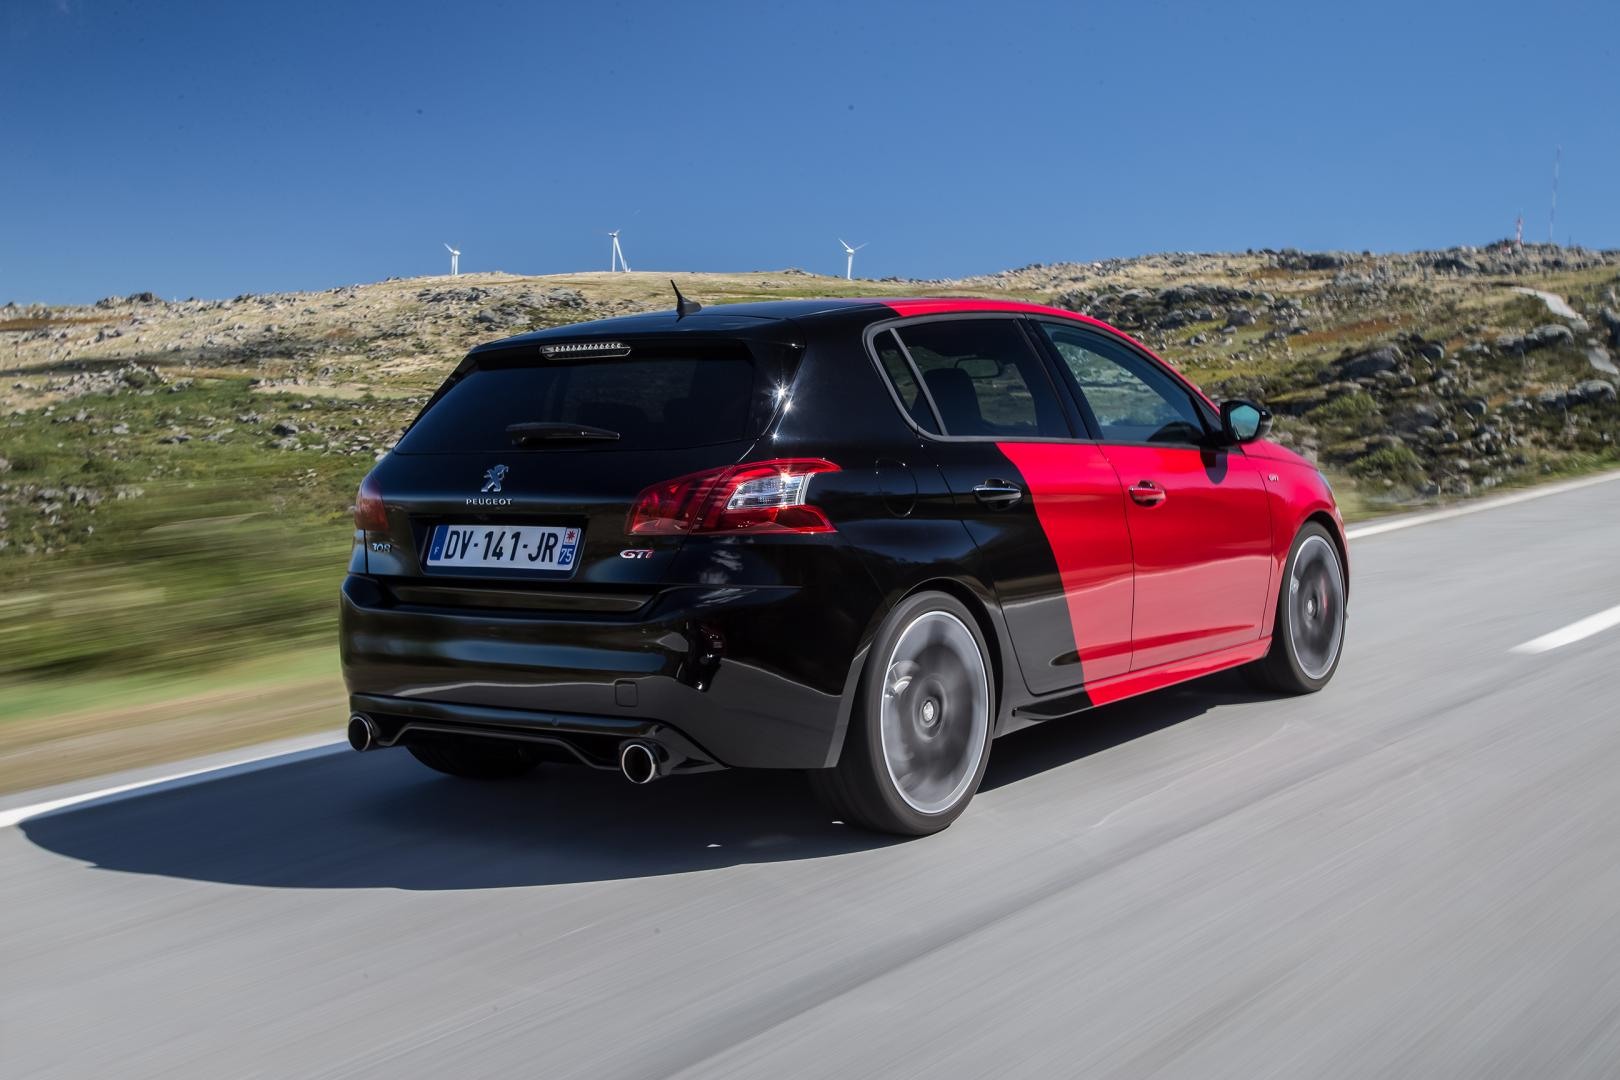 peugeot 308 gti 270 2015 test en specificaties topgear nederland. Black Bedroom Furniture Sets. Home Design Ideas